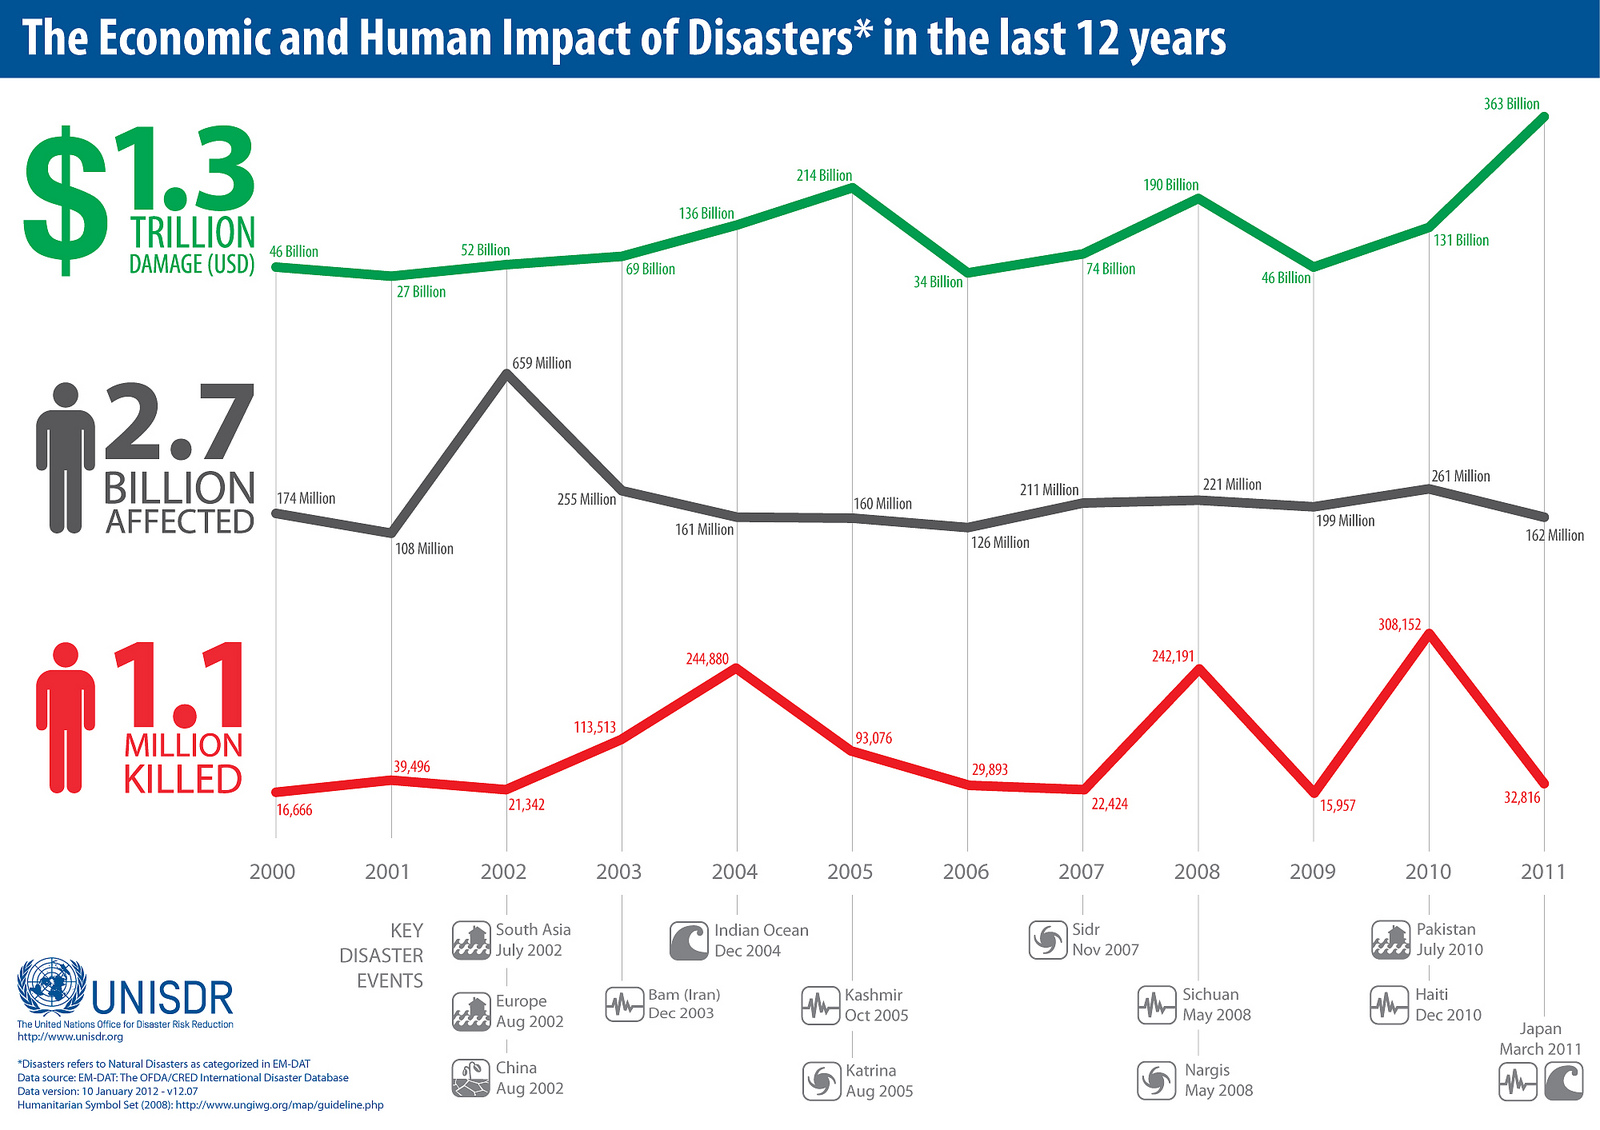 the-economic-and-human-impact-of-disasters-in-the-last-12-years_50abf9a119cce